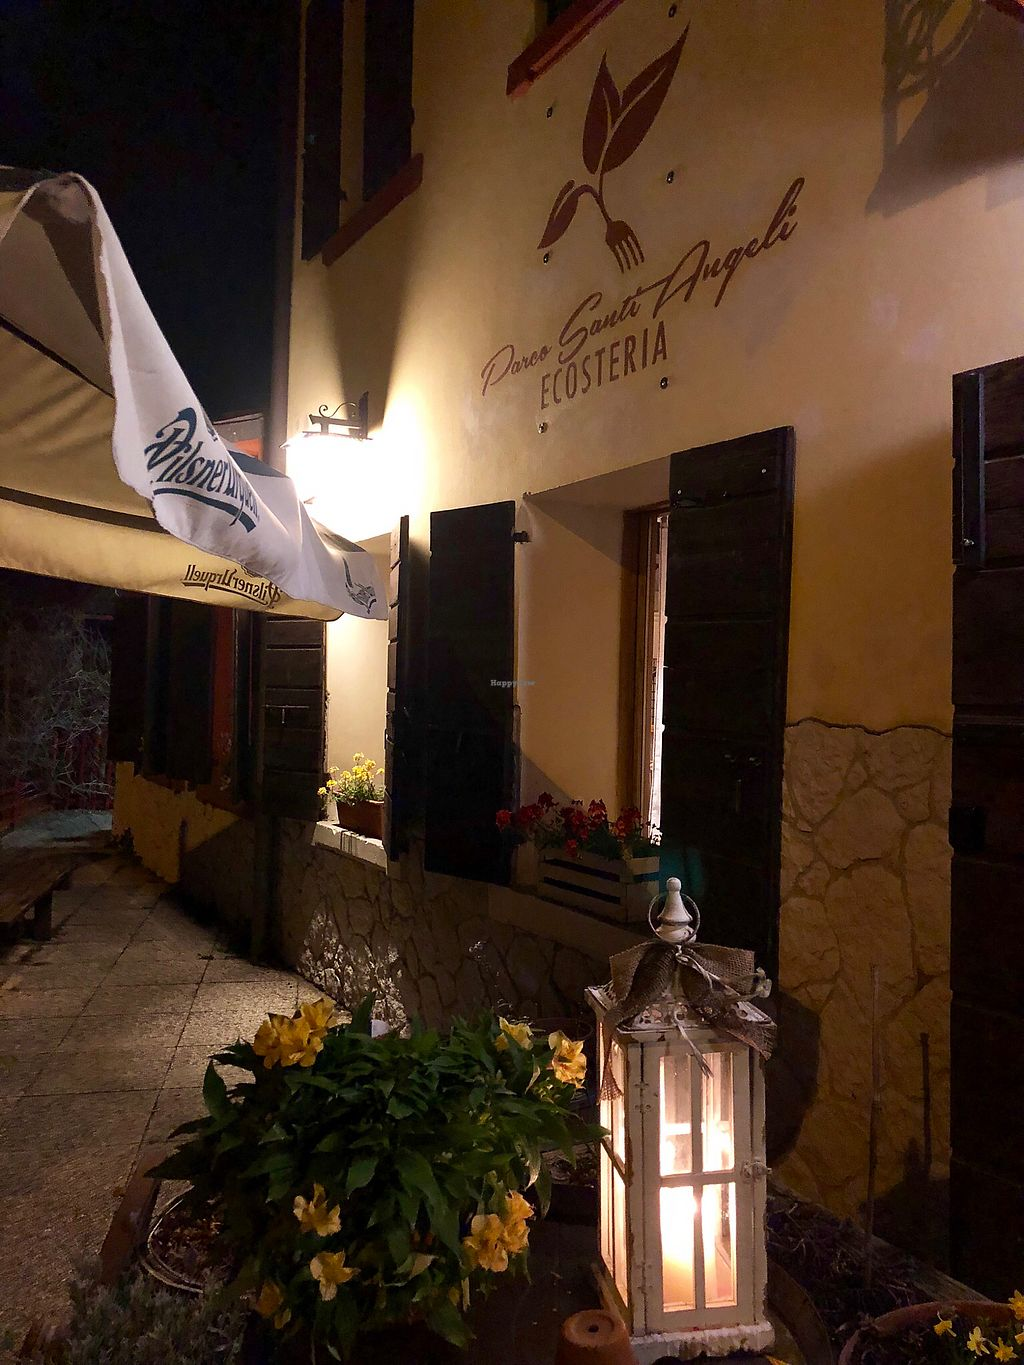 """Photo of Ecosteria Parco Santi Angeli  by <a href=""""/members/profile/maddoc"""">maddoc</a> <br/>ingresso  <br/> March 17, 2018  - <a href='/contact/abuse/image/101163/371808'>Report</a>"""